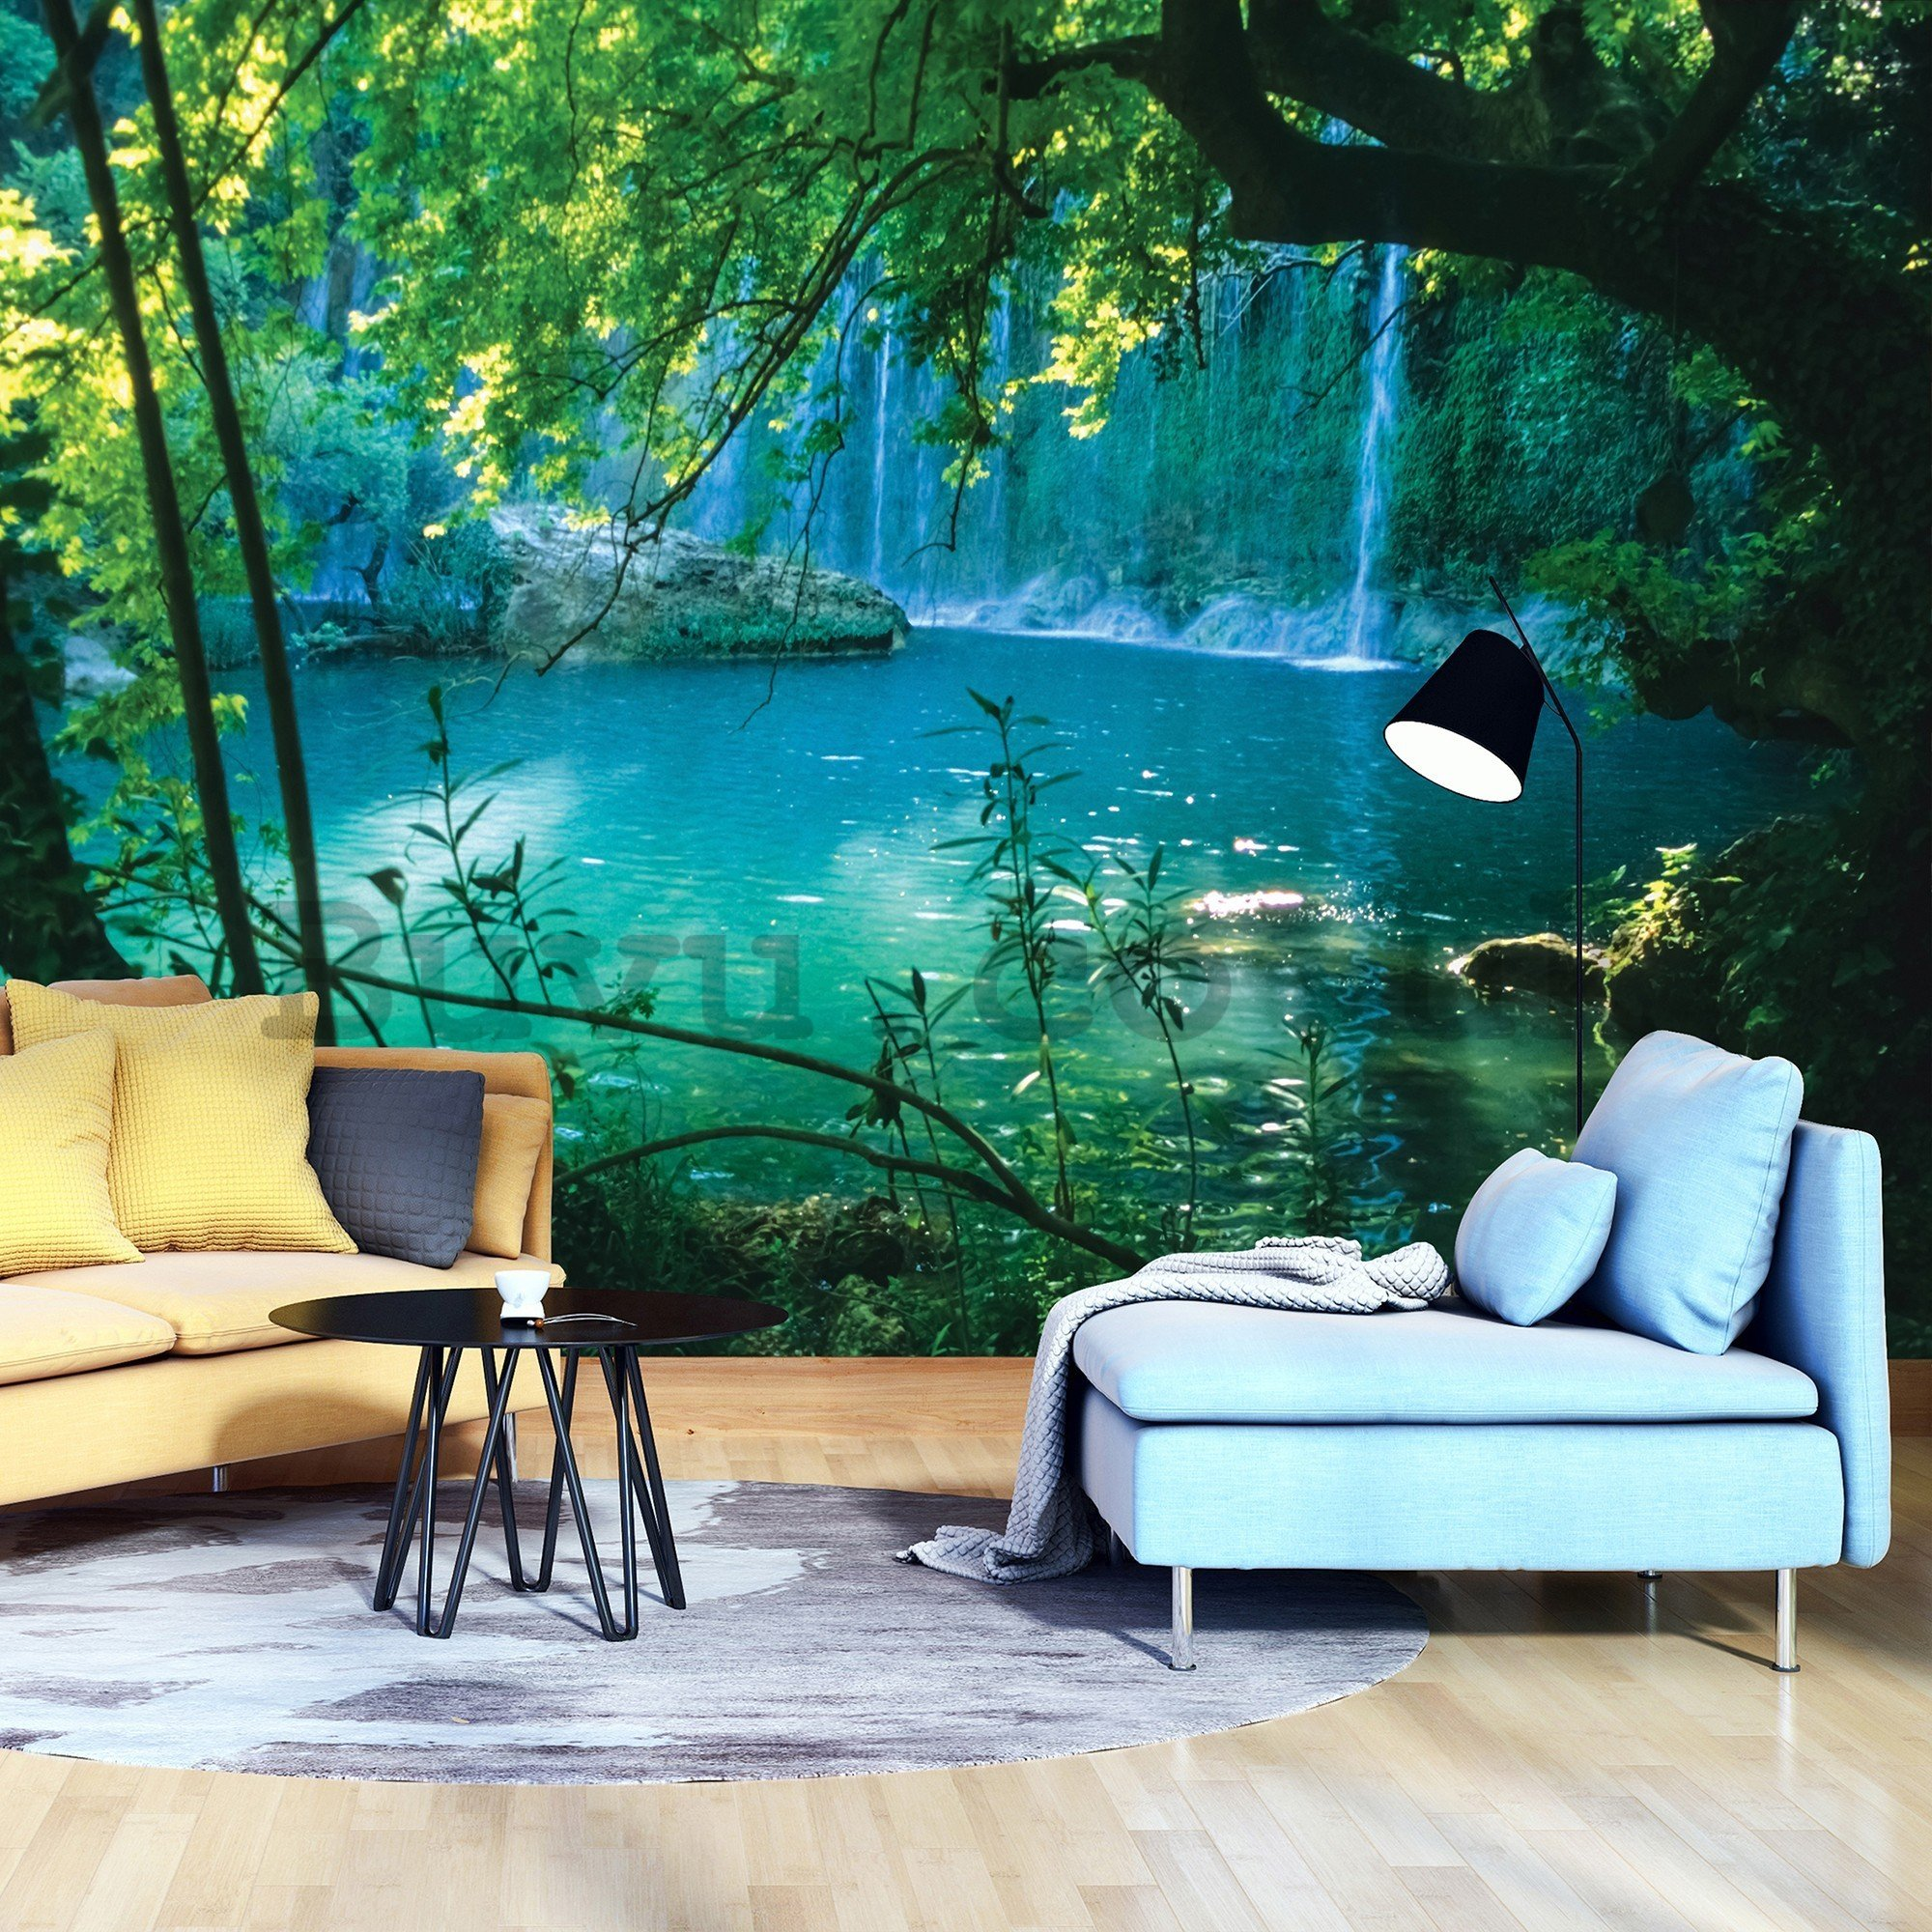 Wall mural vlies: Lake and waterfall - 416x254 cm